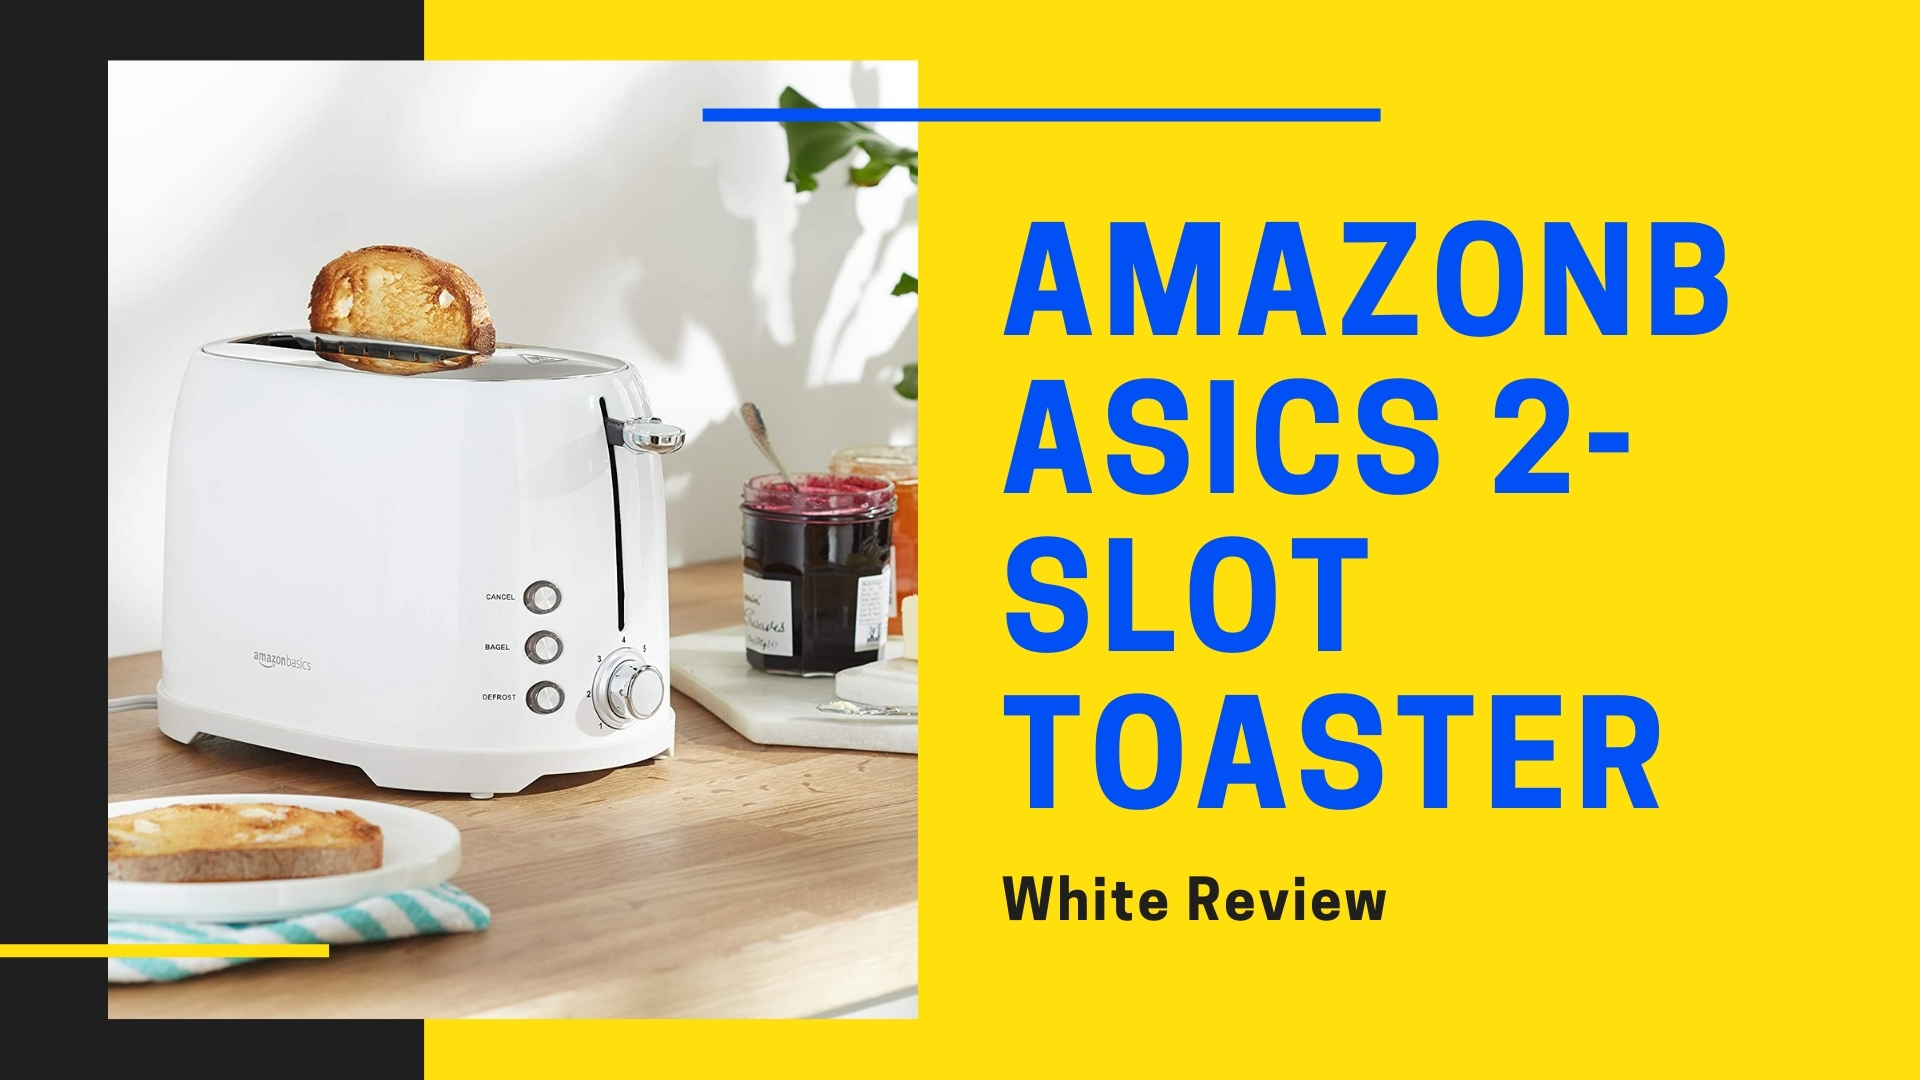 AmazonBasics 2-Slot Toaster Review